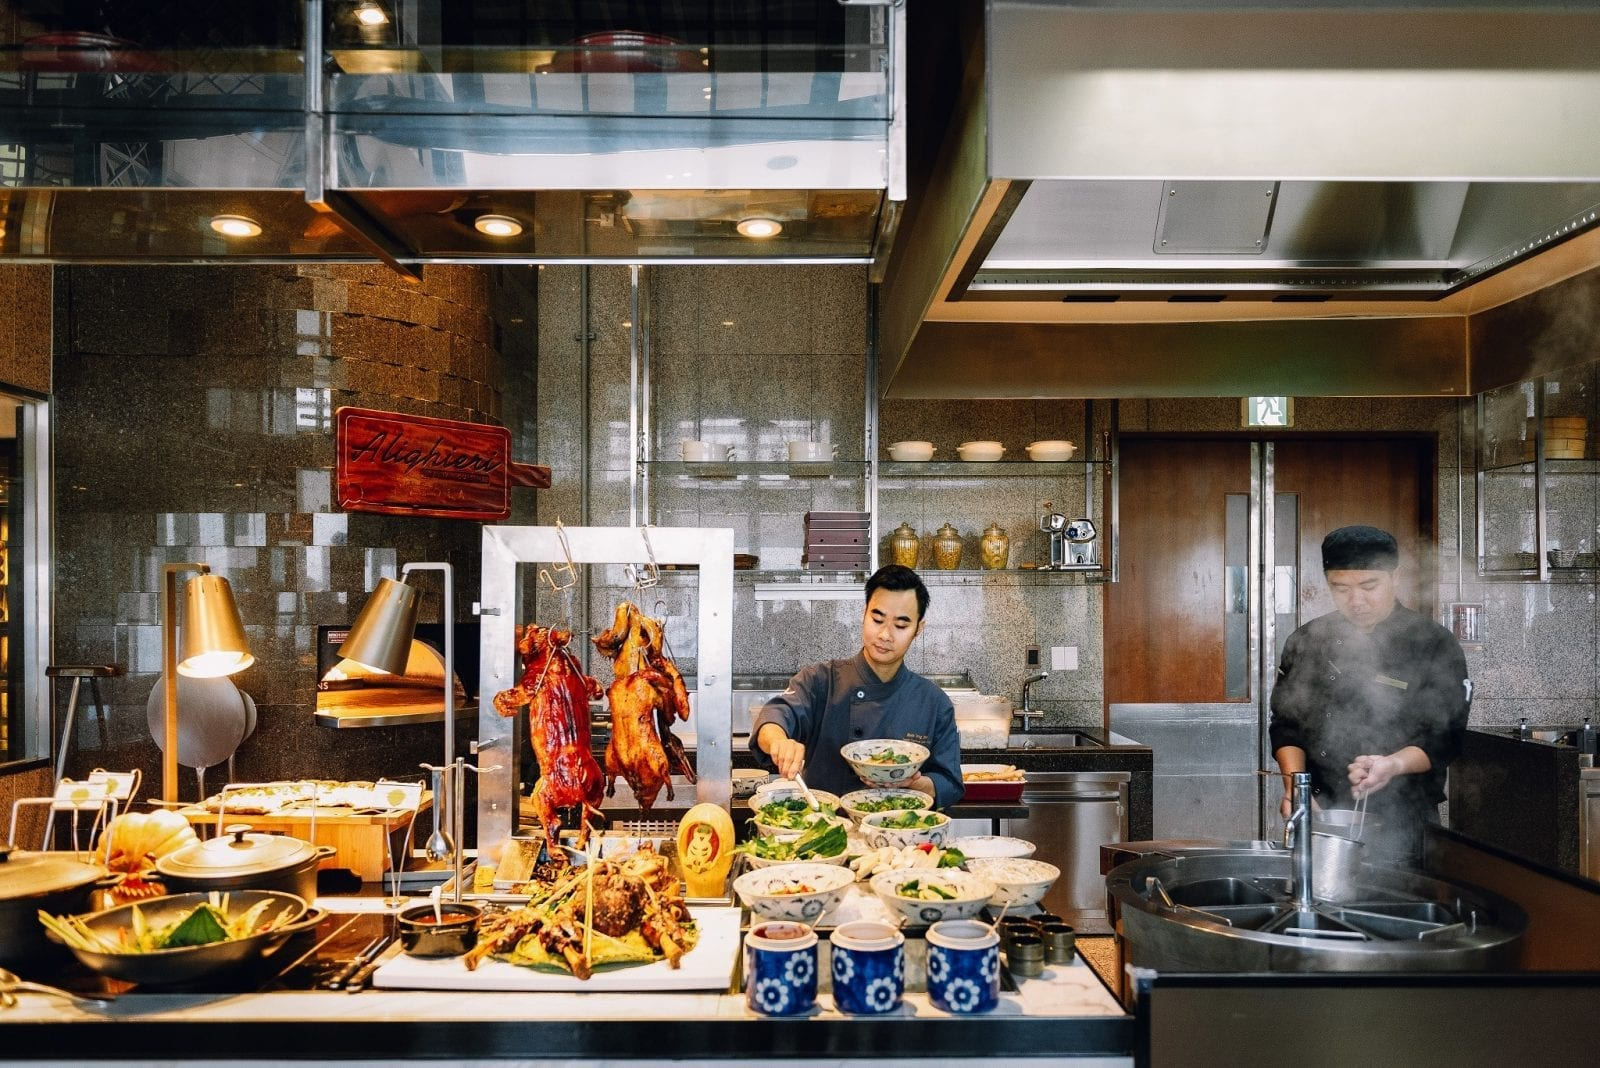 Image of two chefs working at 3spoons at landmark 72 in Hanoi, Vietnam